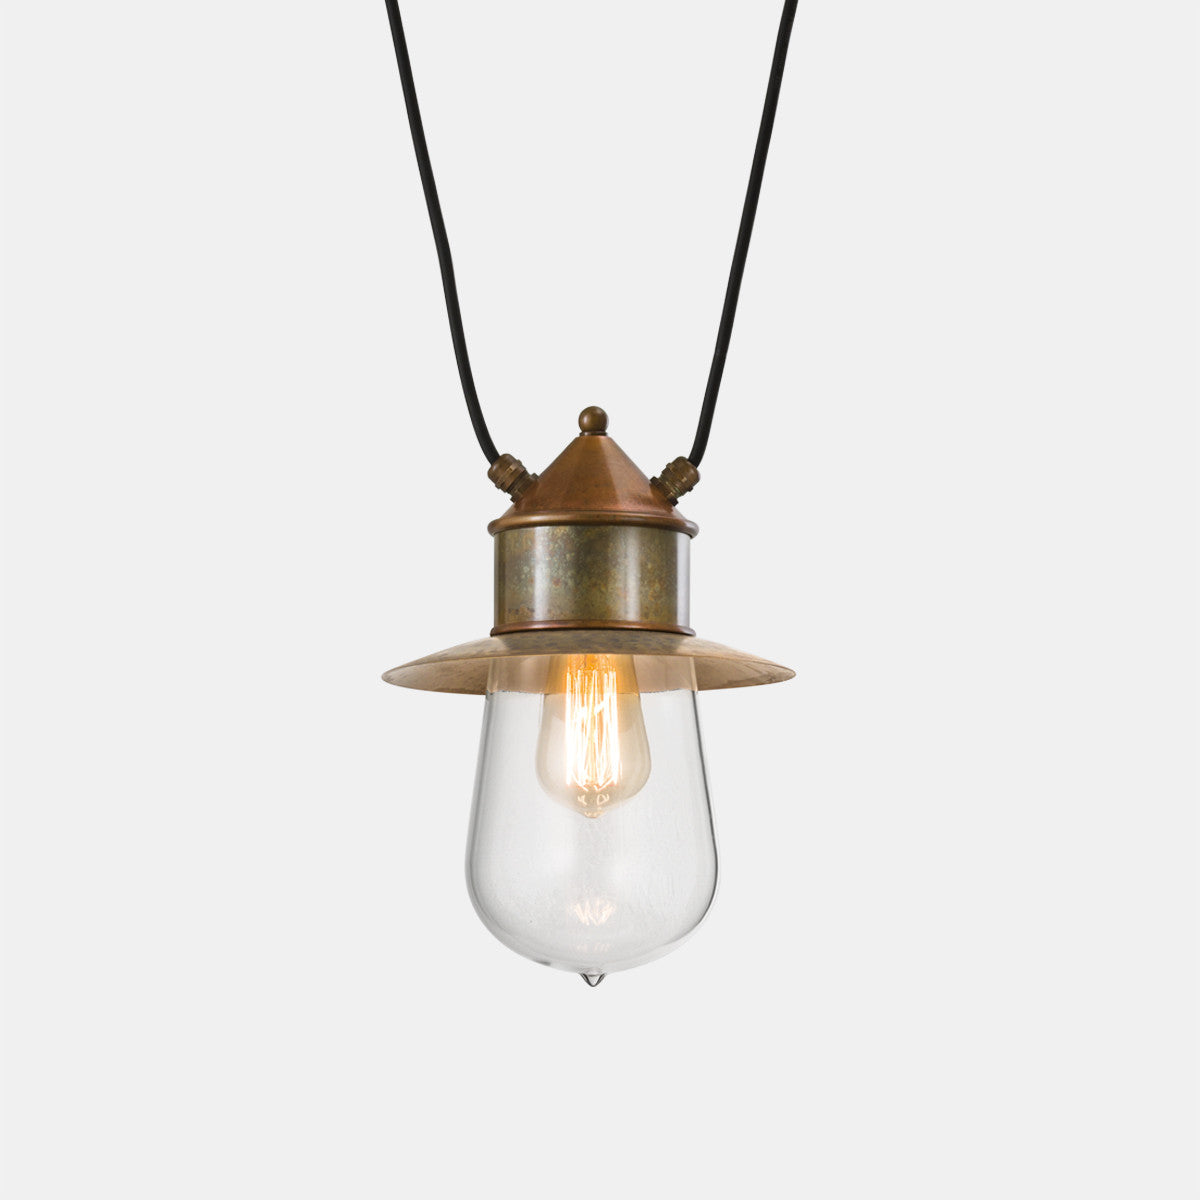 DROP Outdoor Pendant Light 270.12.ORT | touchGOODS